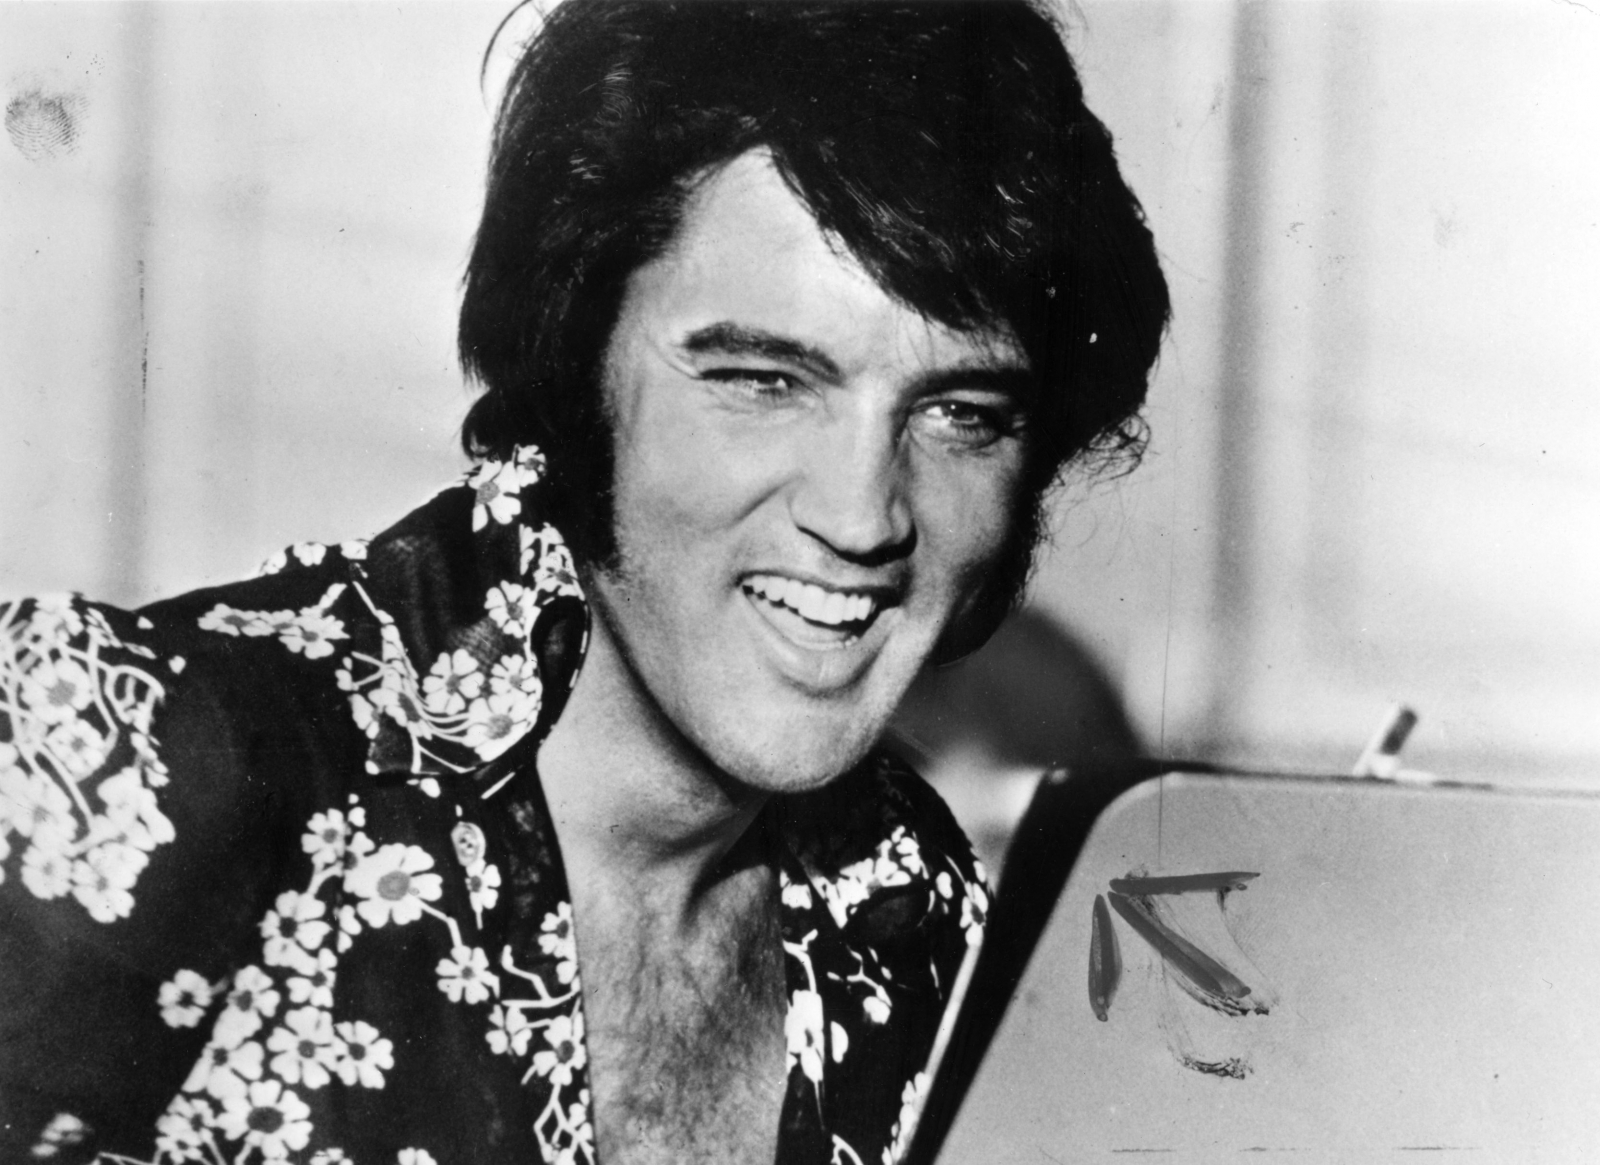 Last words of Elvis Presley revealed by music great's fiancee when he died, Ginger Alden